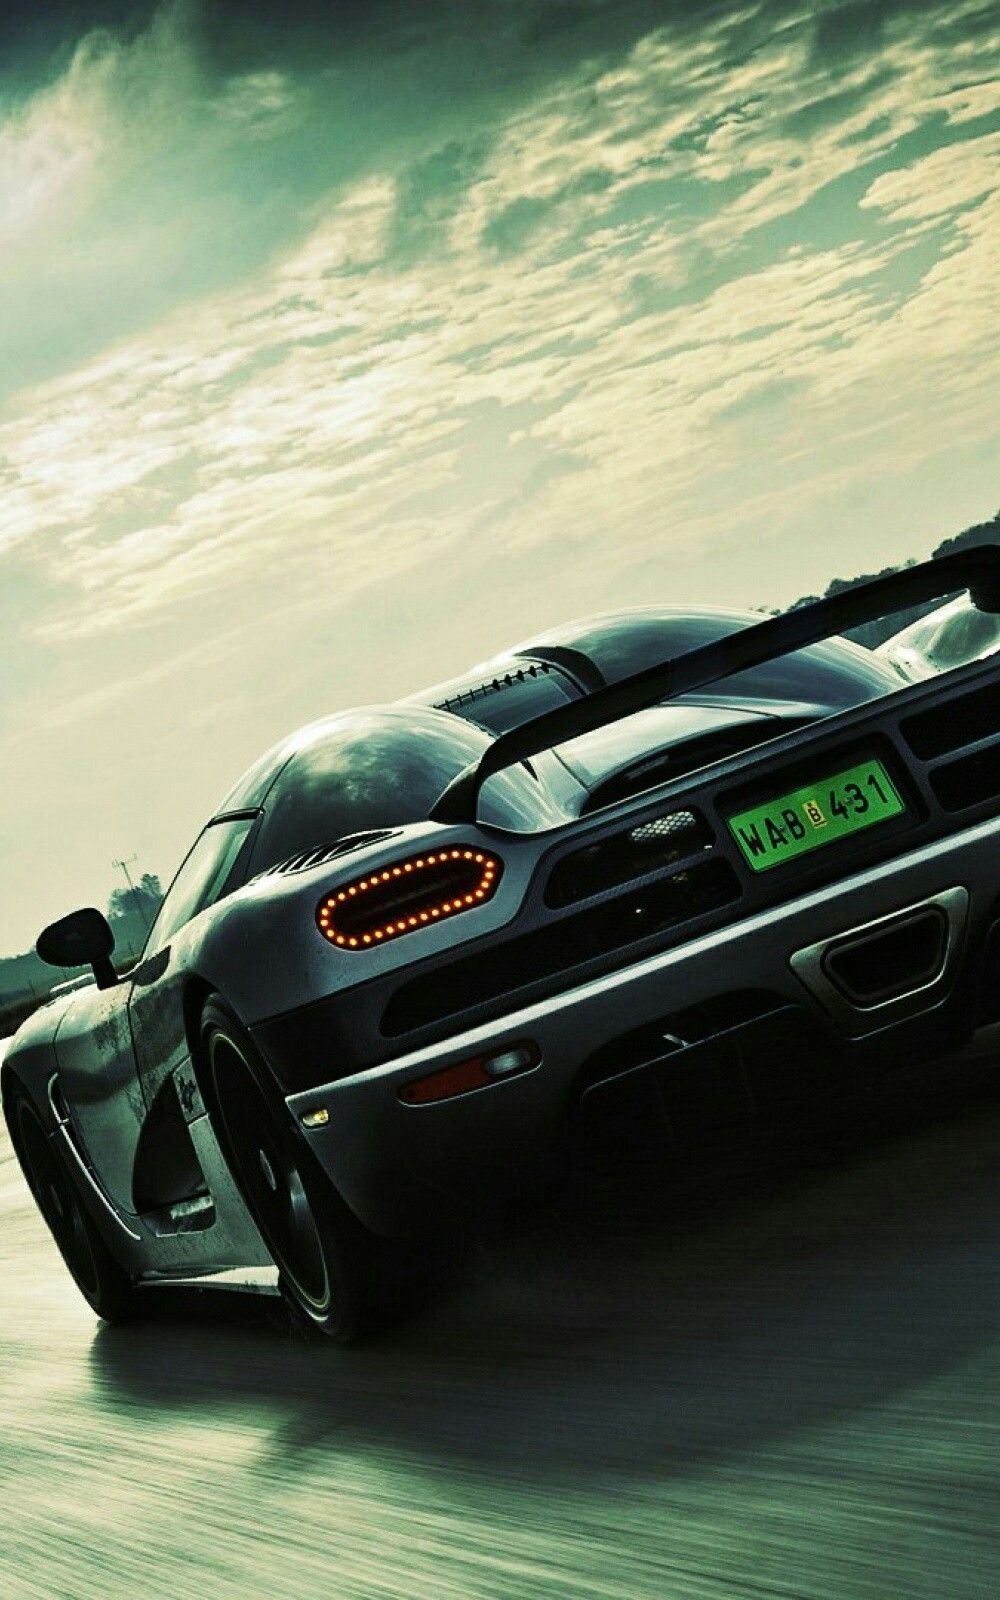 Koenigsegg Super Car With Images Supercars Wallpaper